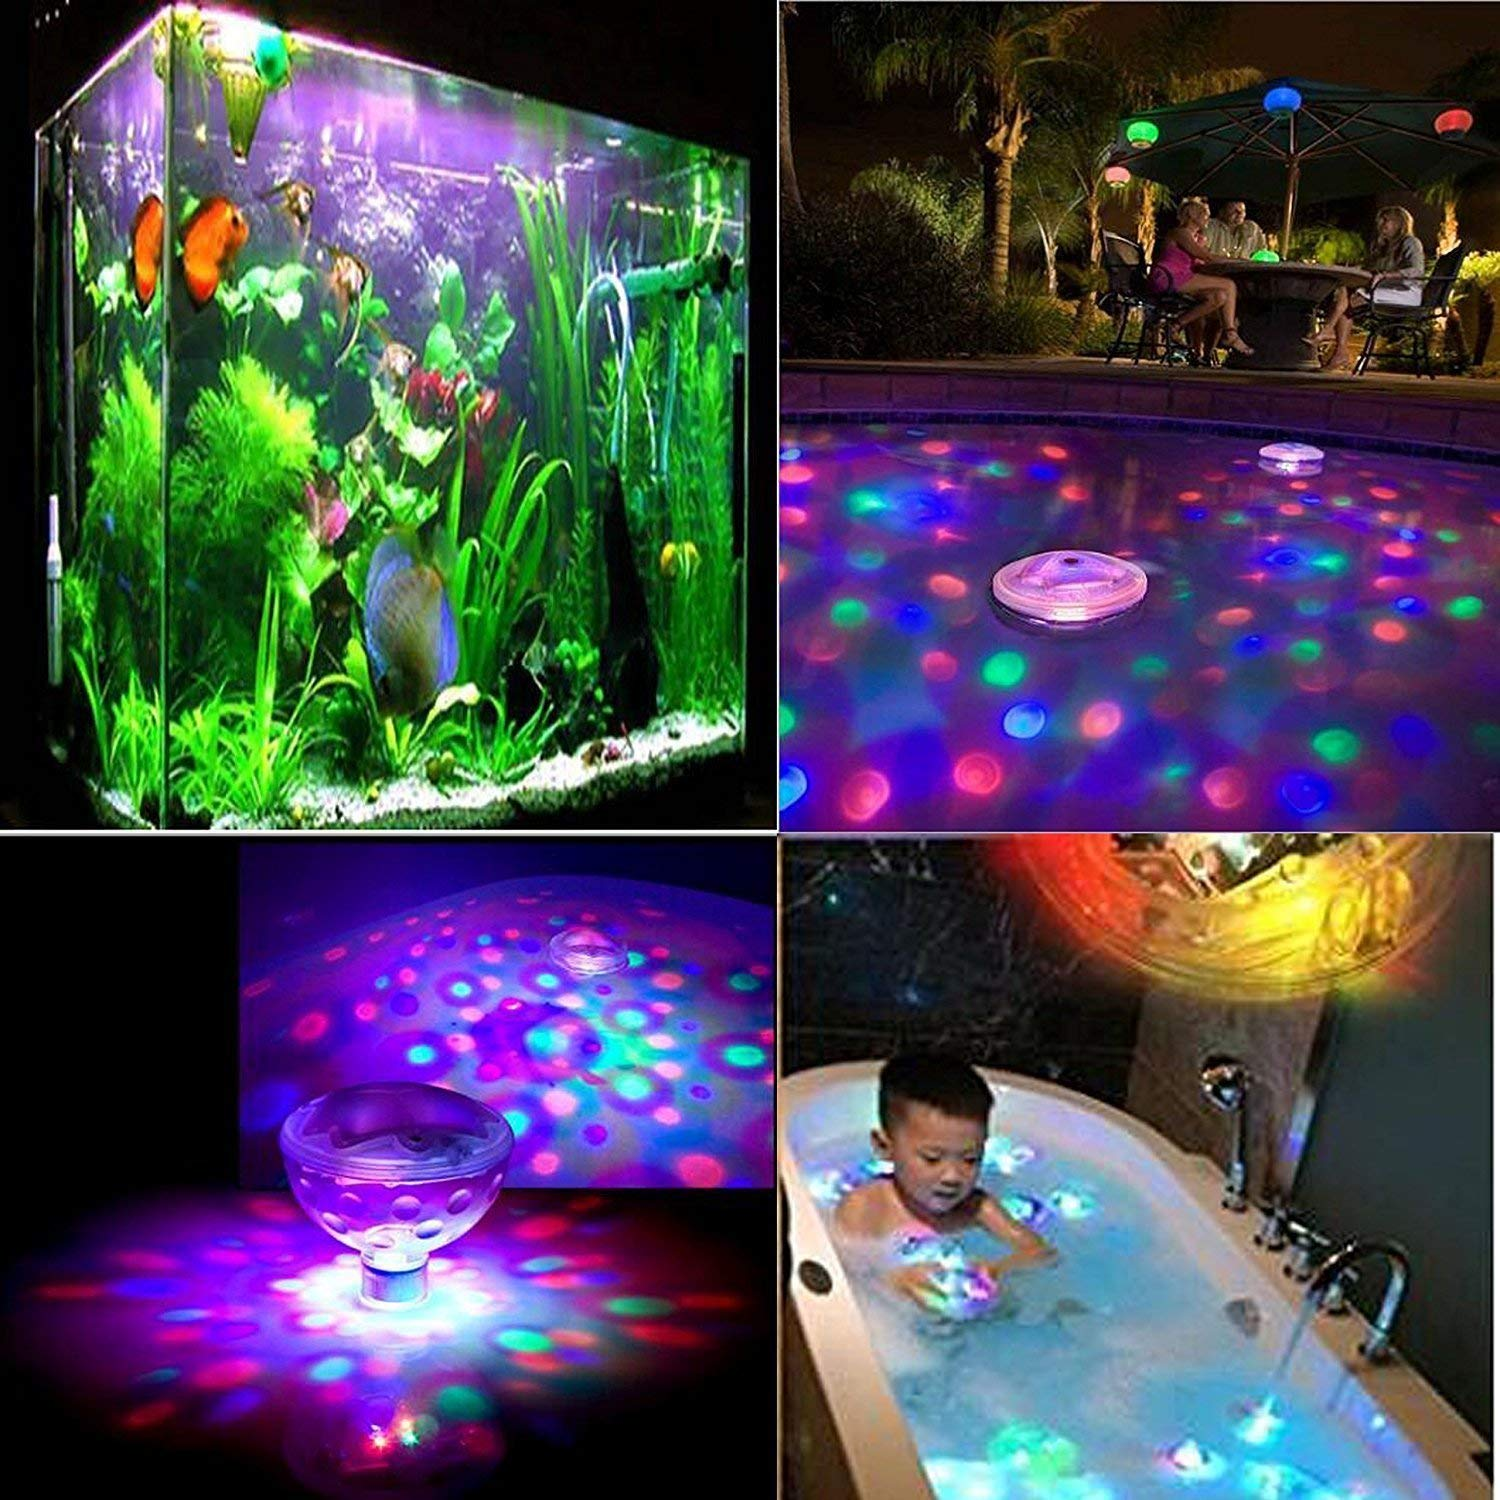 2PC Underwater Light Colorful Decoration Lamp LED Kids Toys Bathroom Ball Bulbs Spa Glow Swimming Pool Pond Baby Floating Children Bath Tub